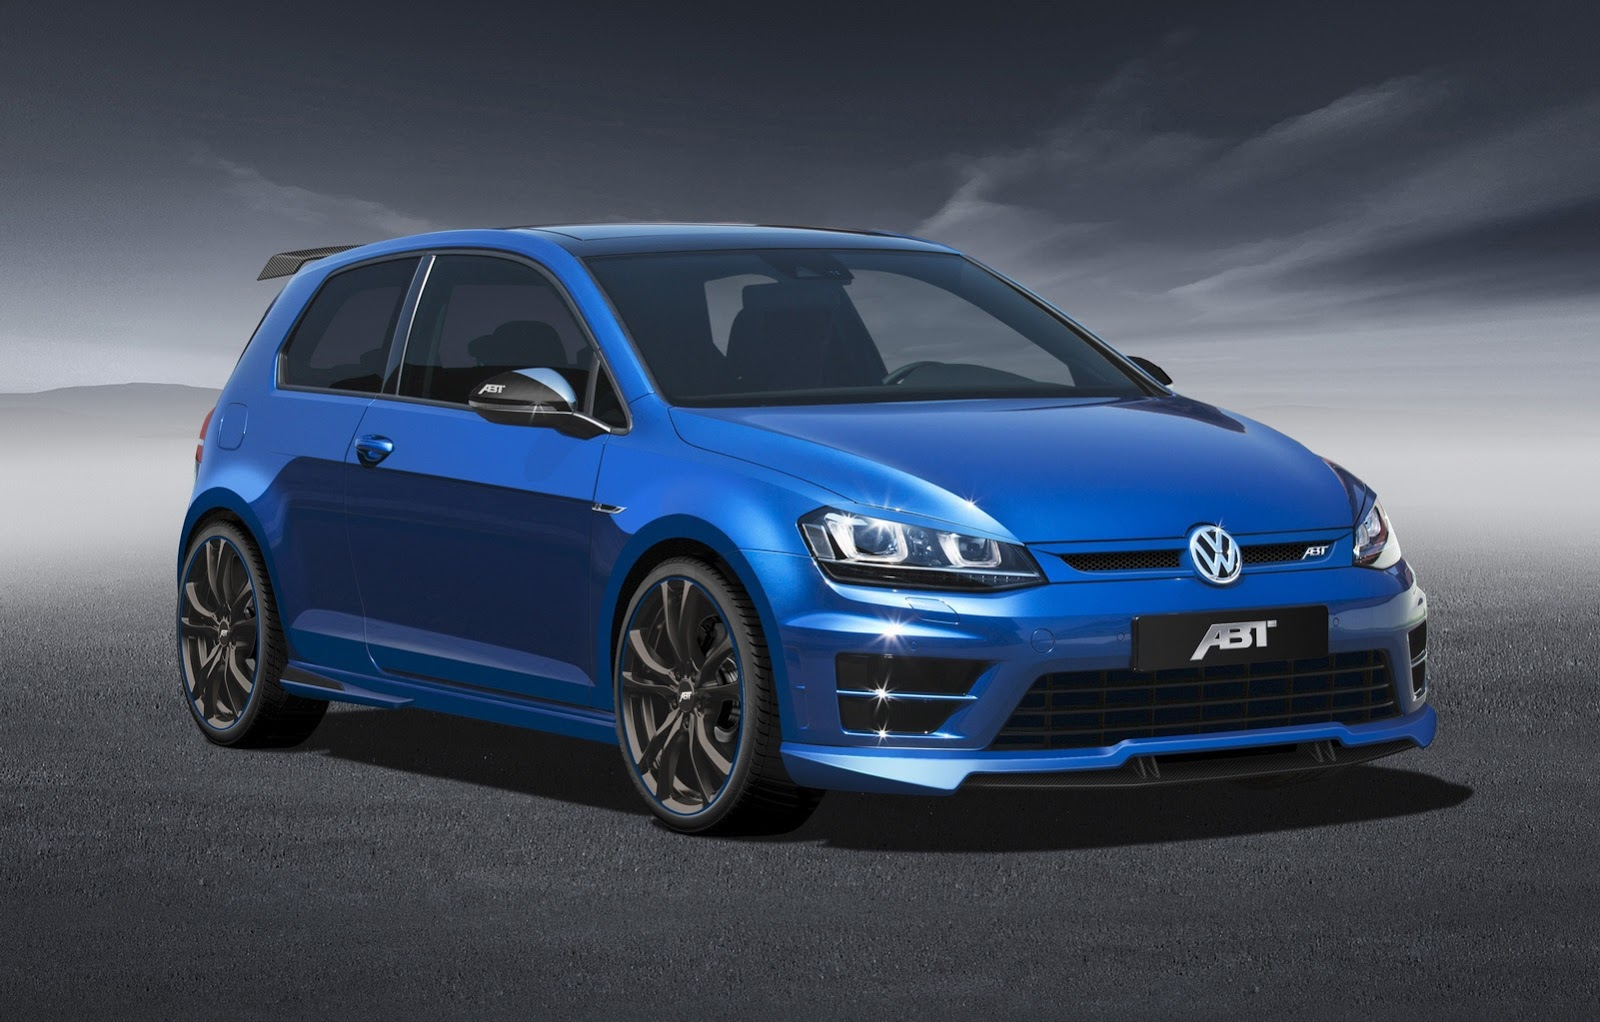 Volkswagen Tuning Abt Tuned Golf R Does 0 100km H In 4 5s